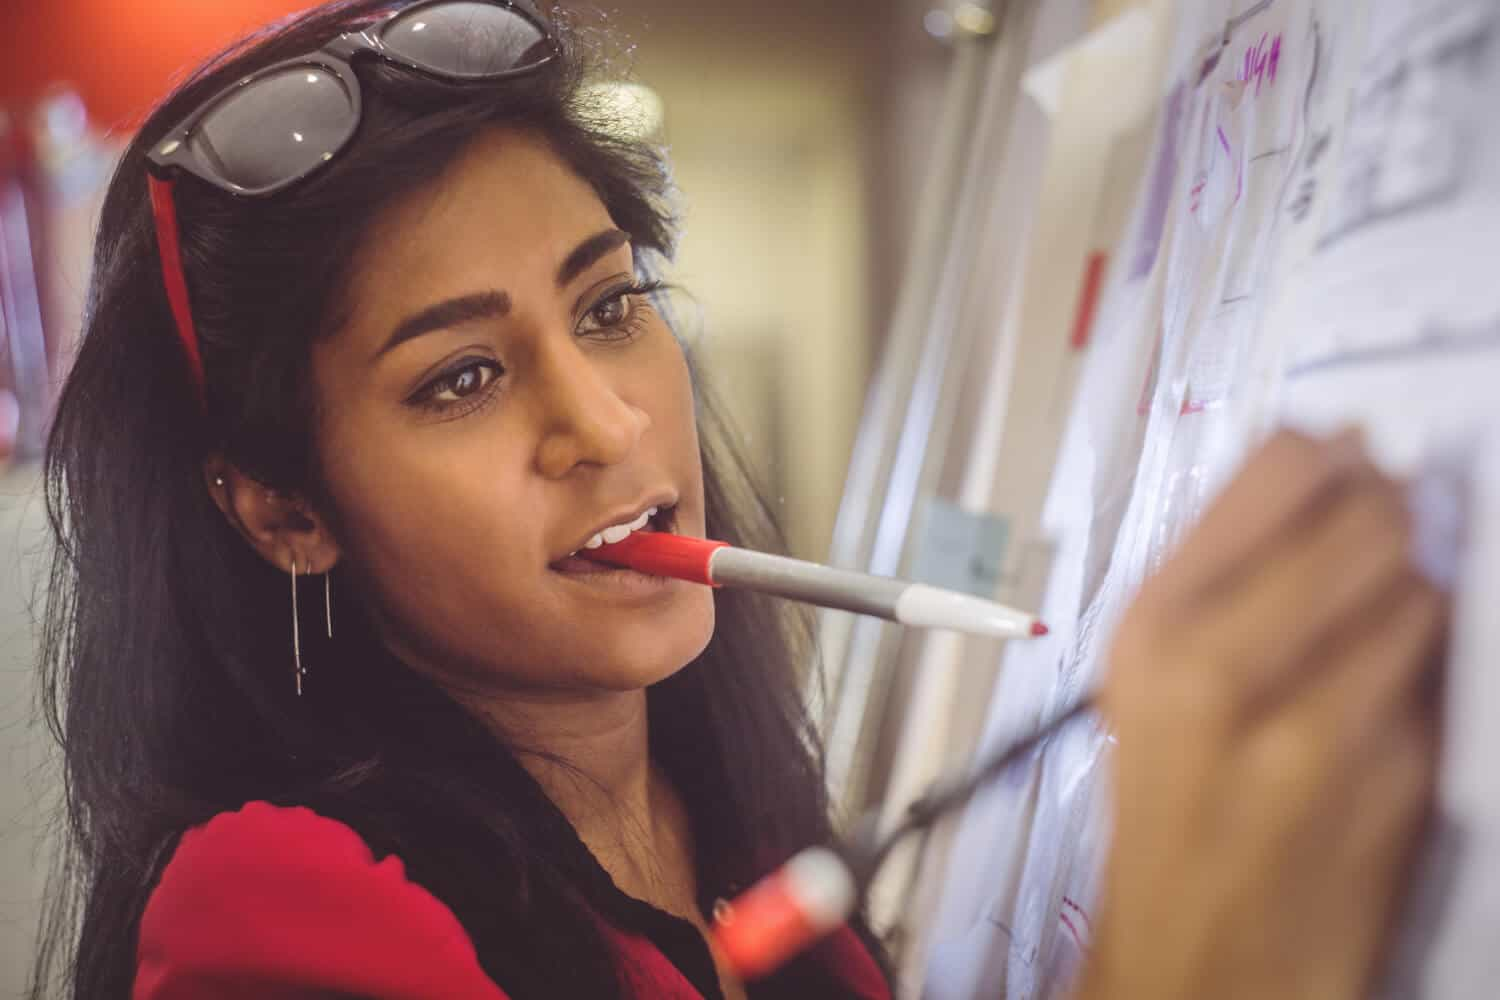 A woman drawing with markers shows how to work side hustles